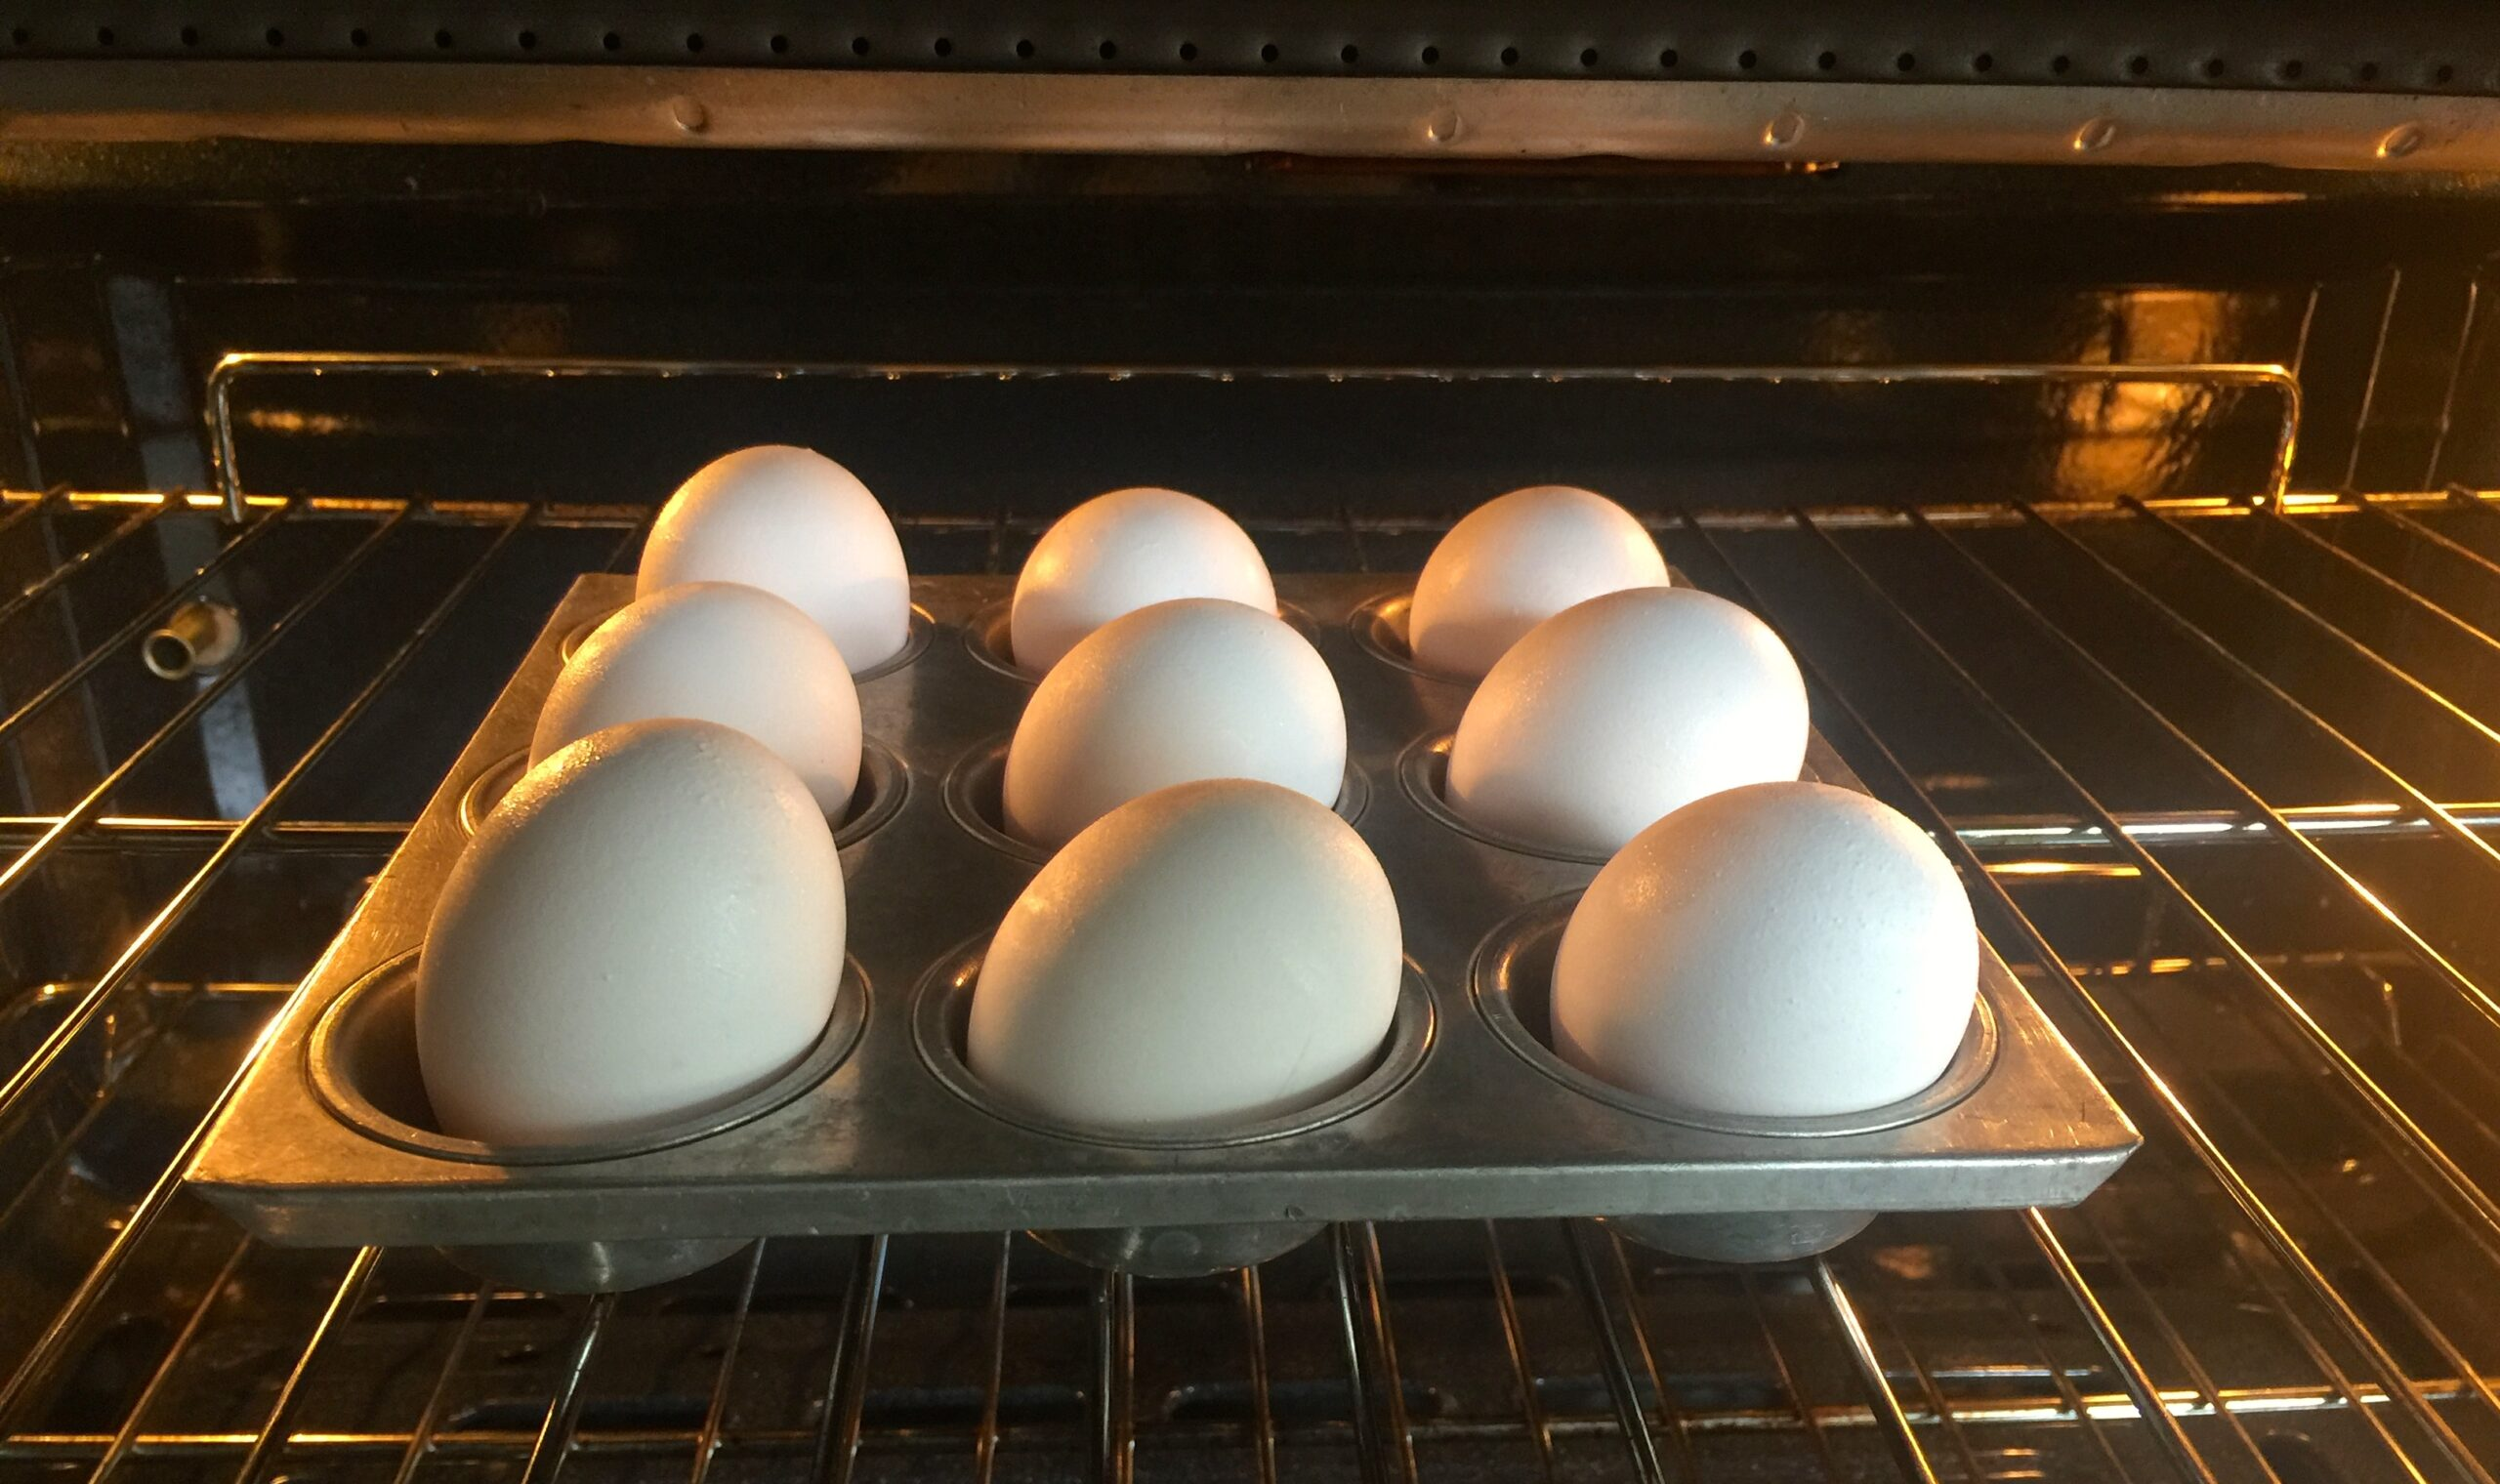 Place your eggs in a muffin tin and bake to hard boil eggs in the oven